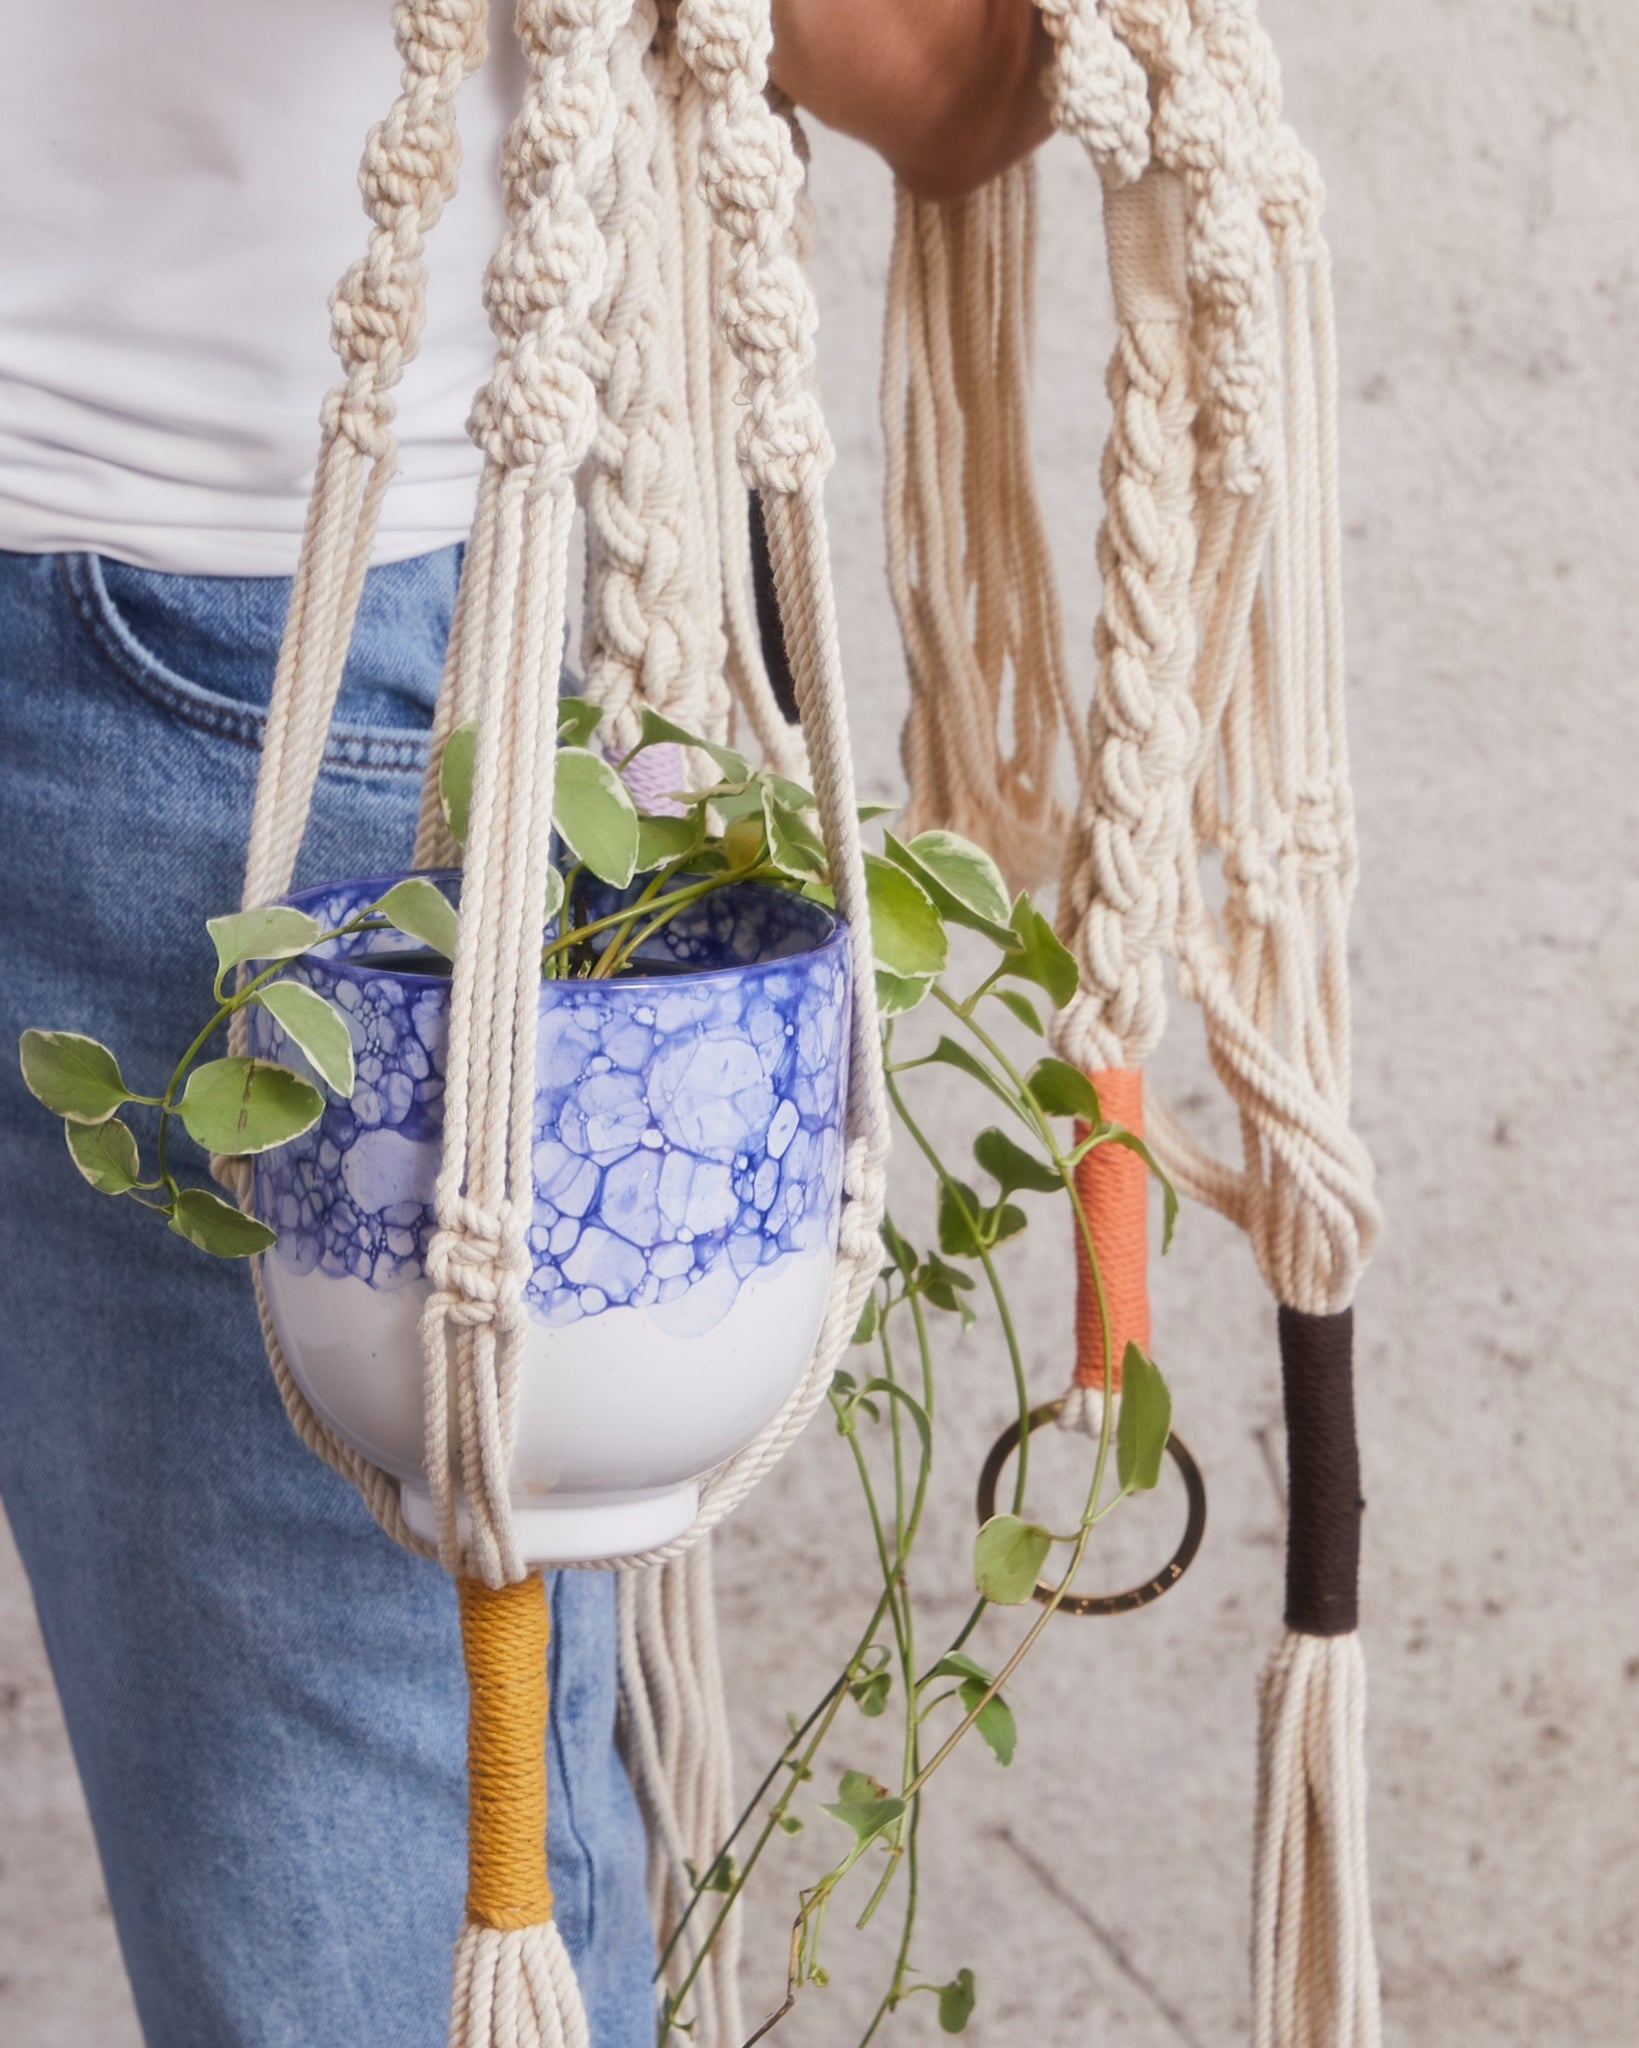 close up of woman holding multiple macrame plant hangers with different color knots